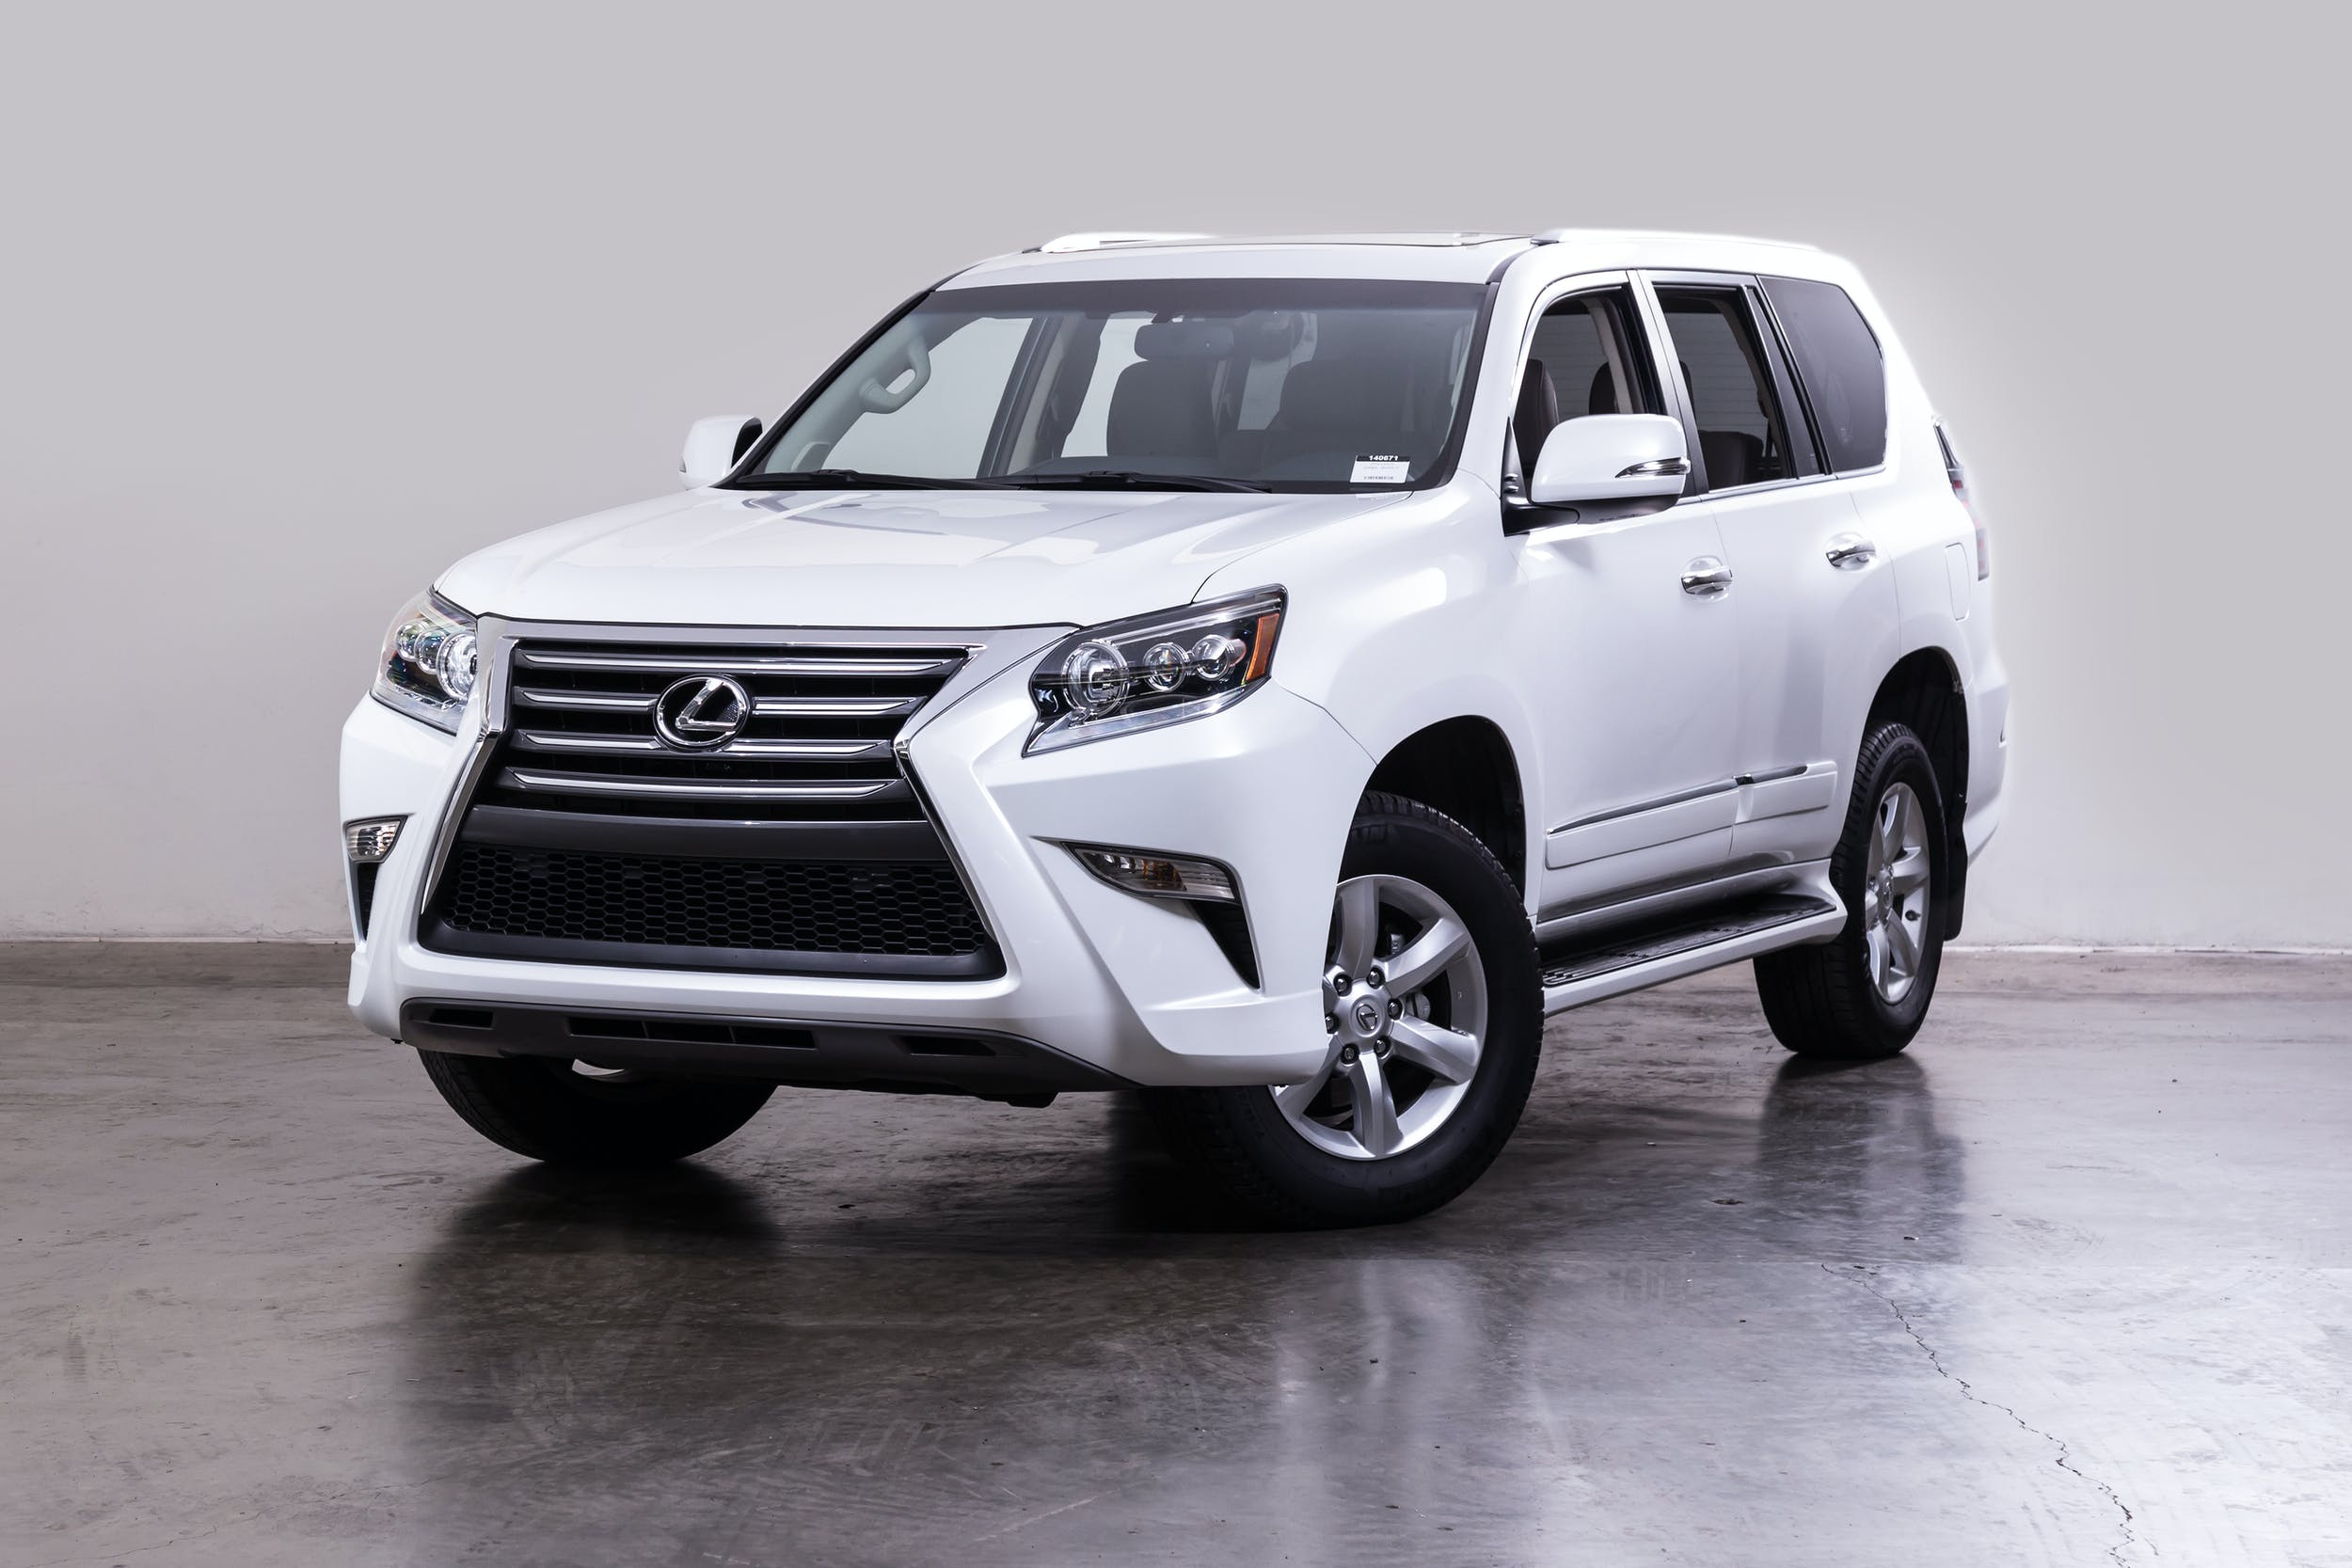 test rapha reviews road suv with created l review lexus gx driving